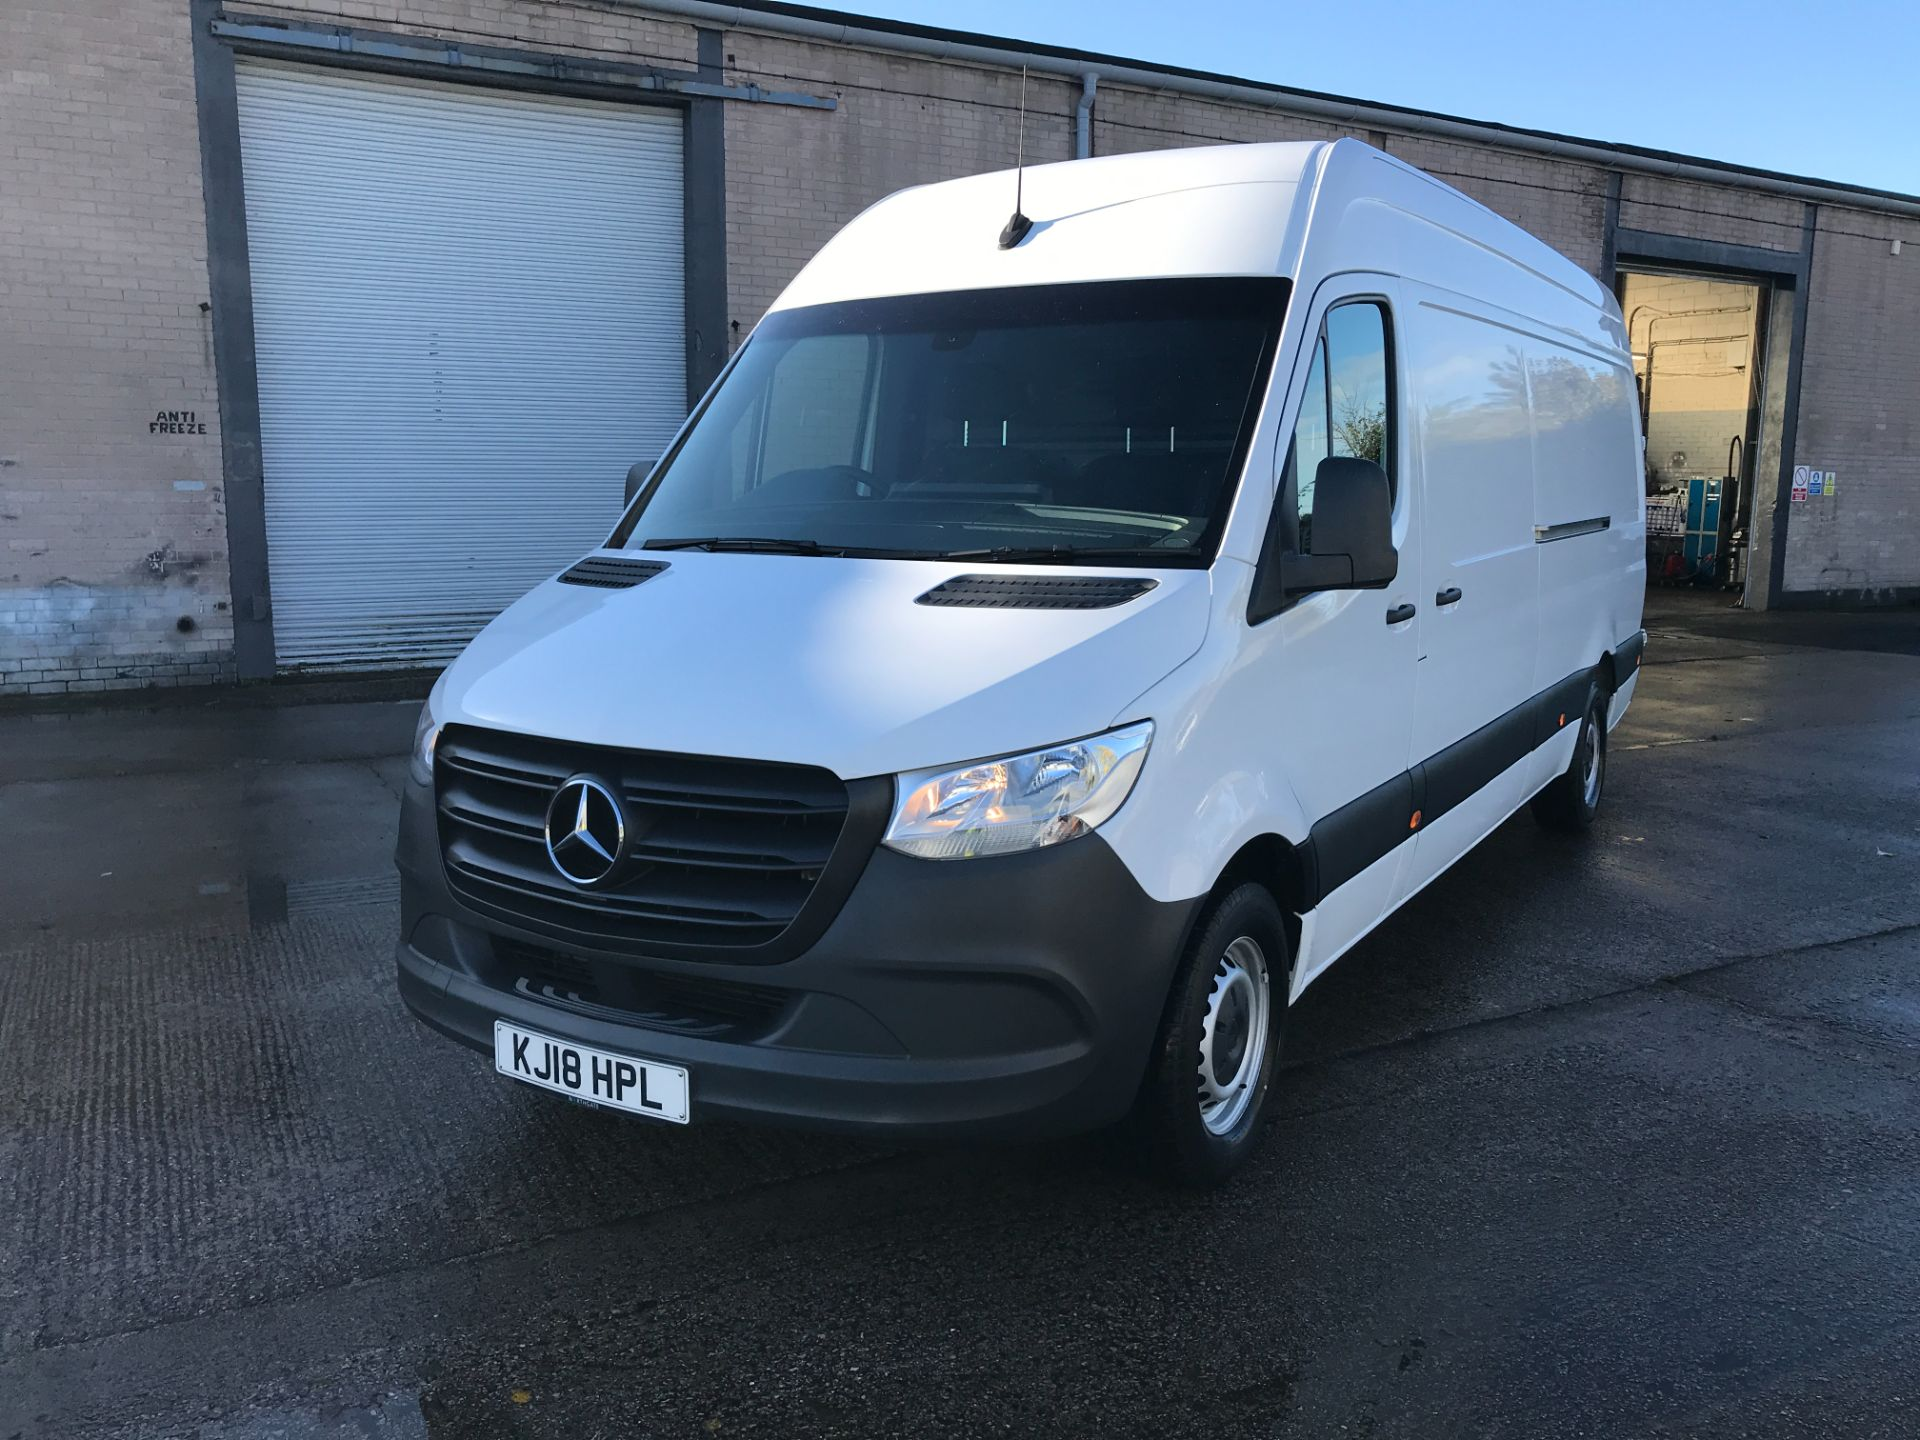 2018 Mercedes-Benz Sprinter 314CDI L3 H2 140PS EURO 6 (KJ18HPL) Thumbnail 13